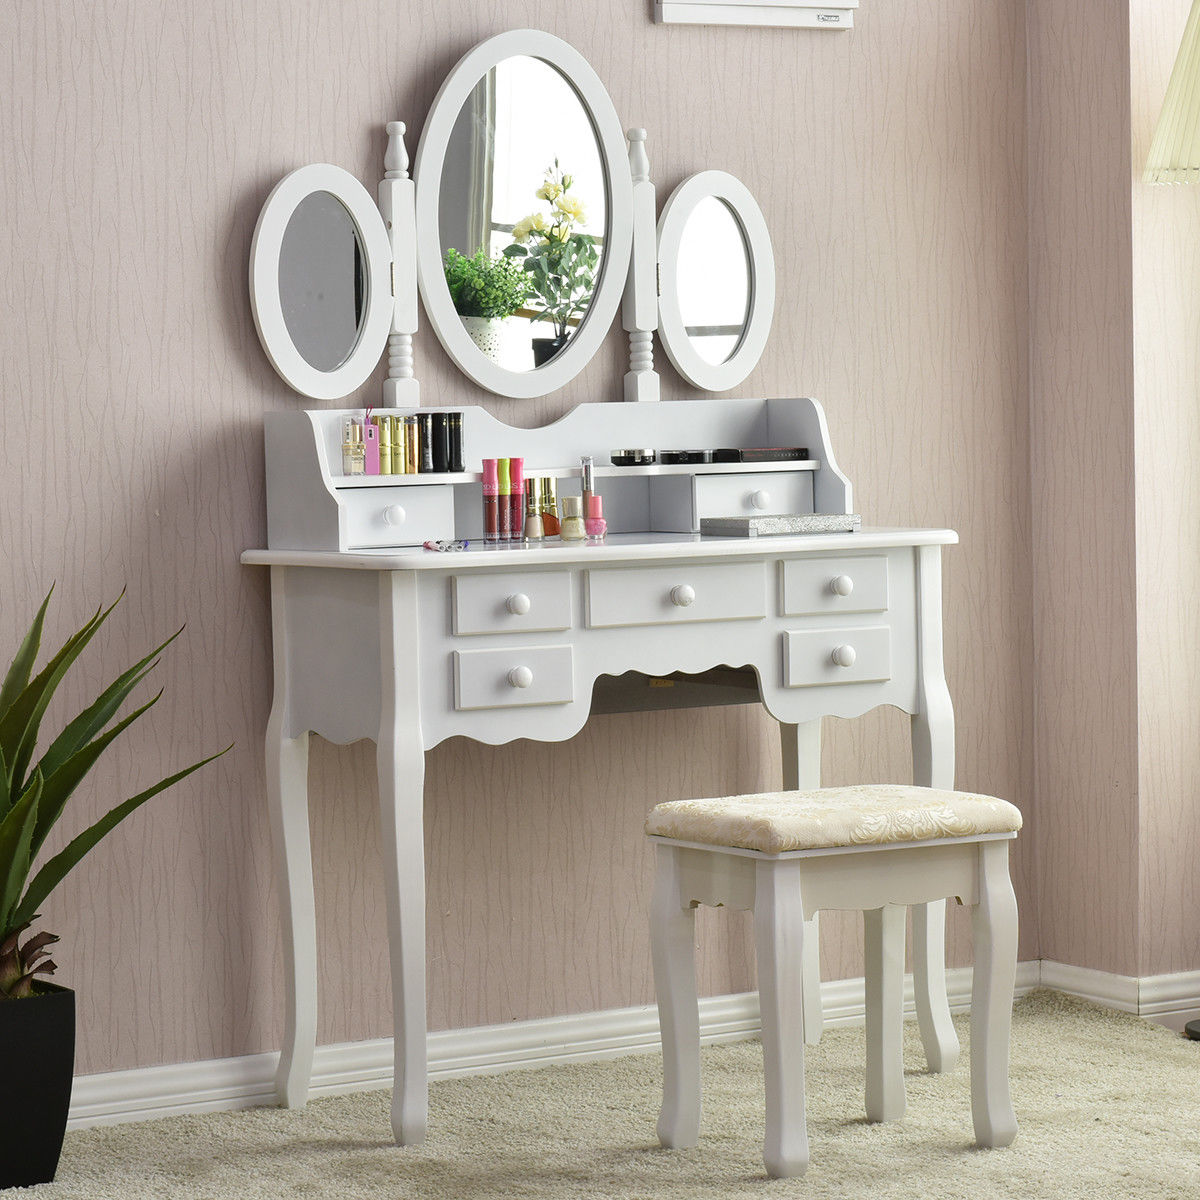 bedroom vanity sets giantex white vanity wood makeup dressing table stool set 10721